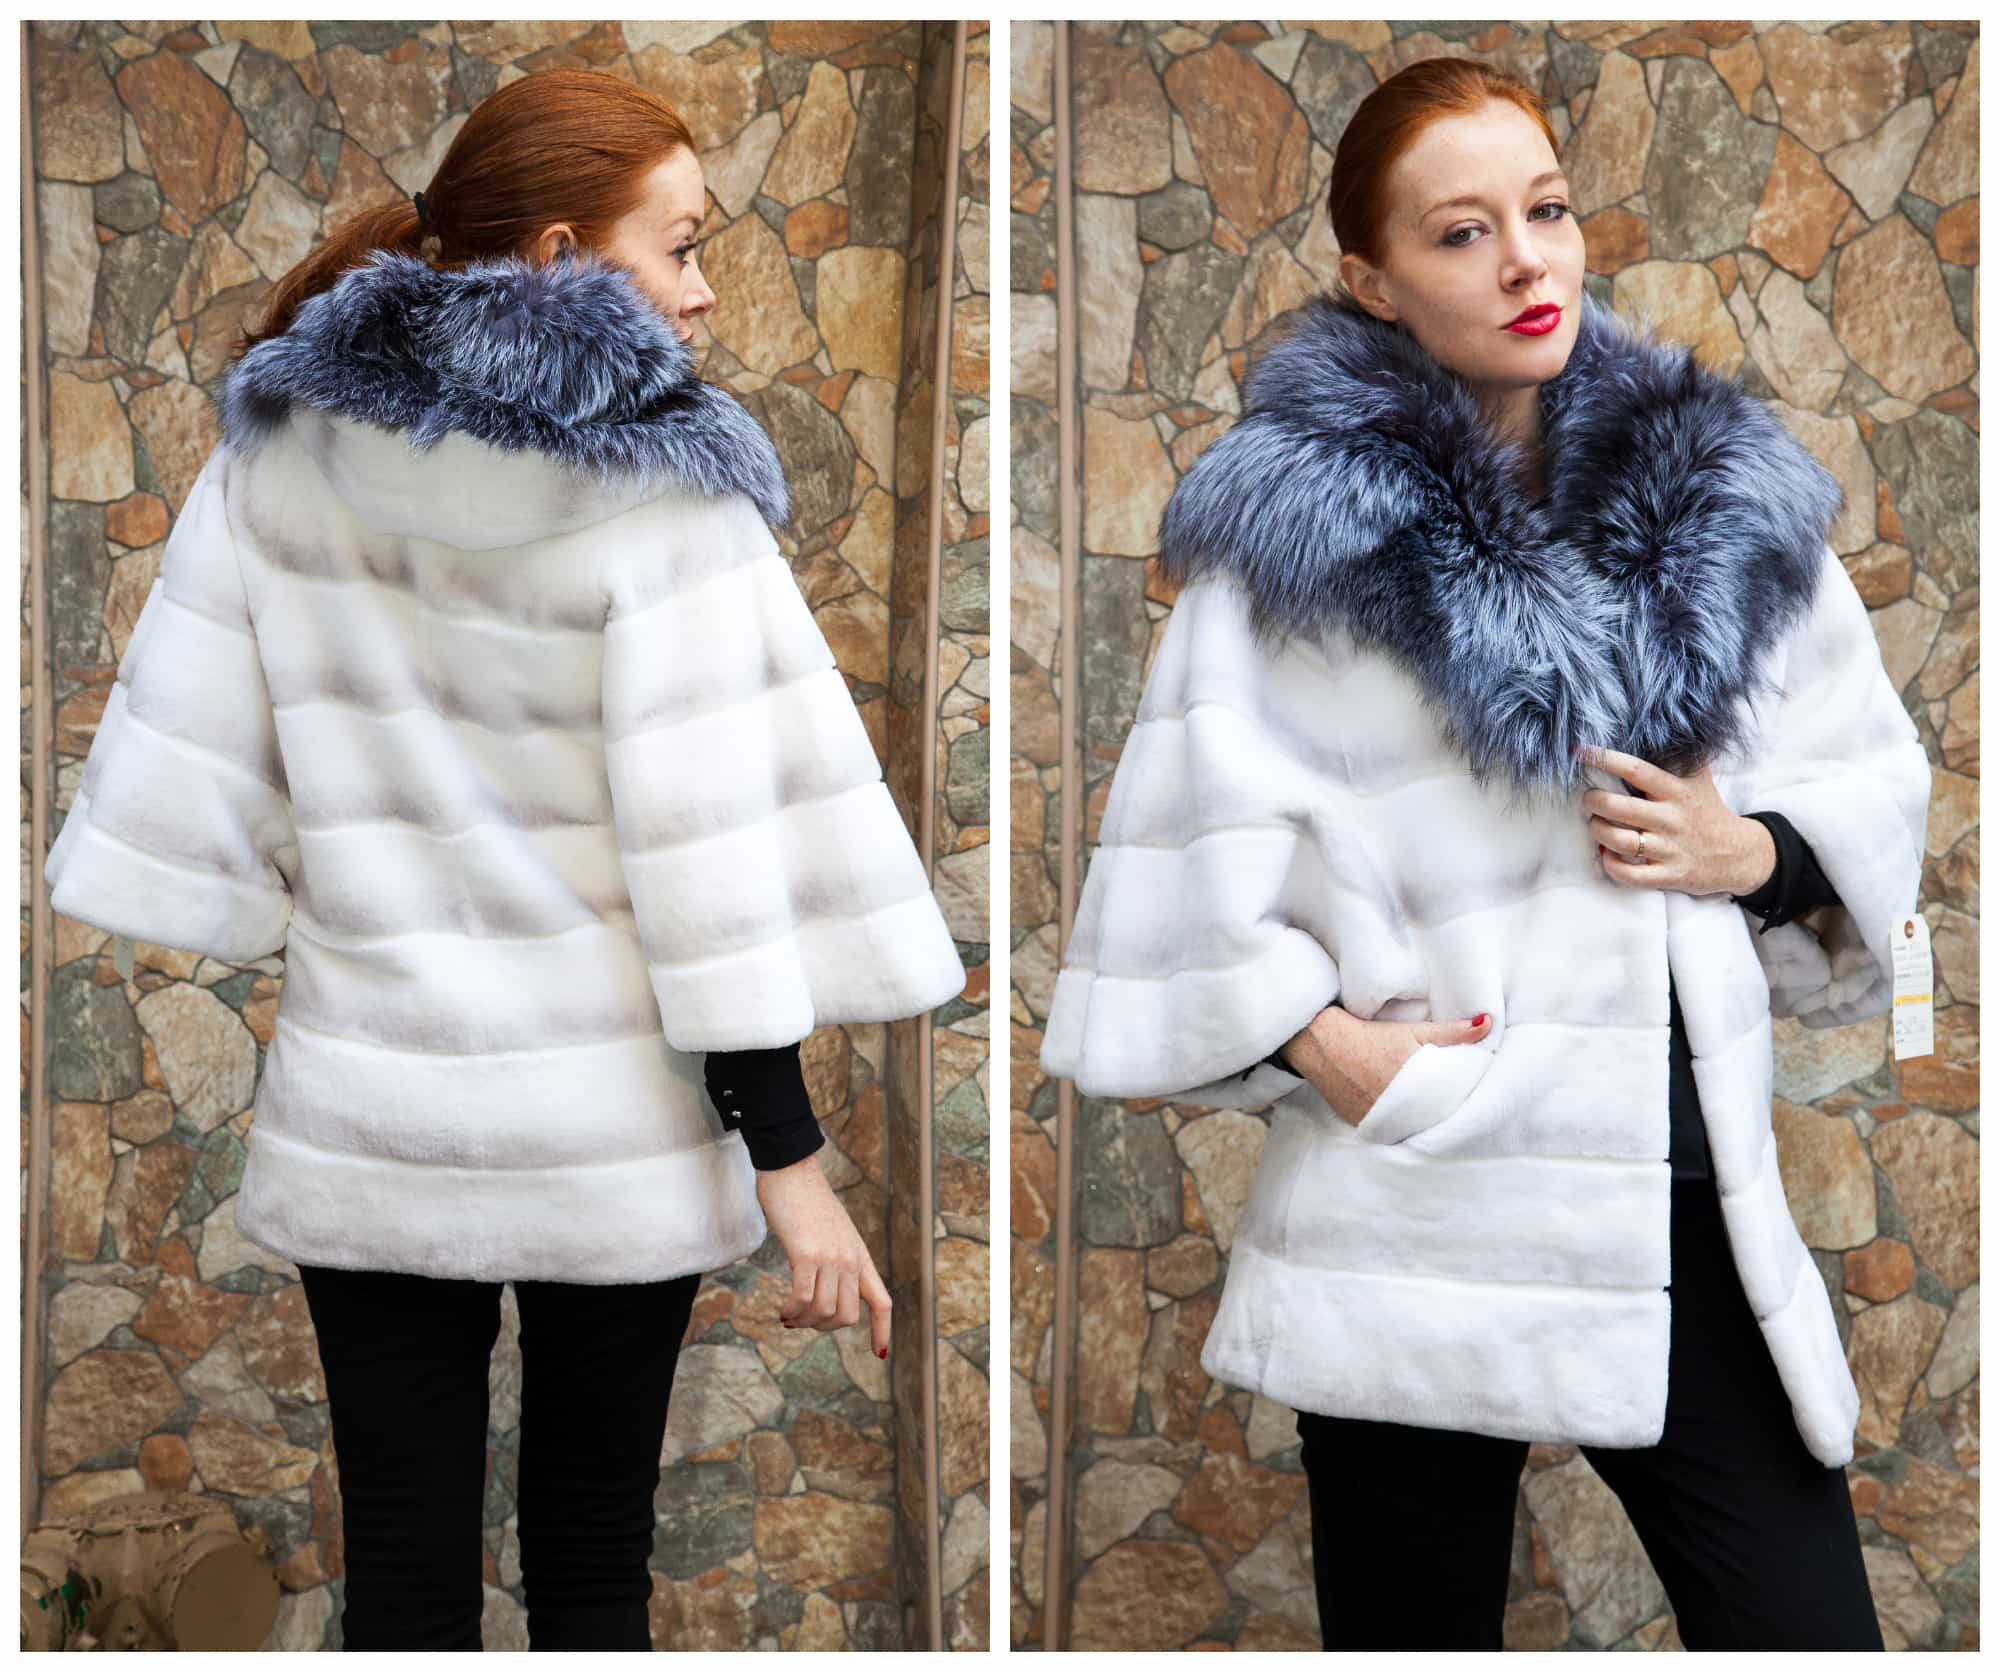 White Fur: The Epitome of Chic Modernity